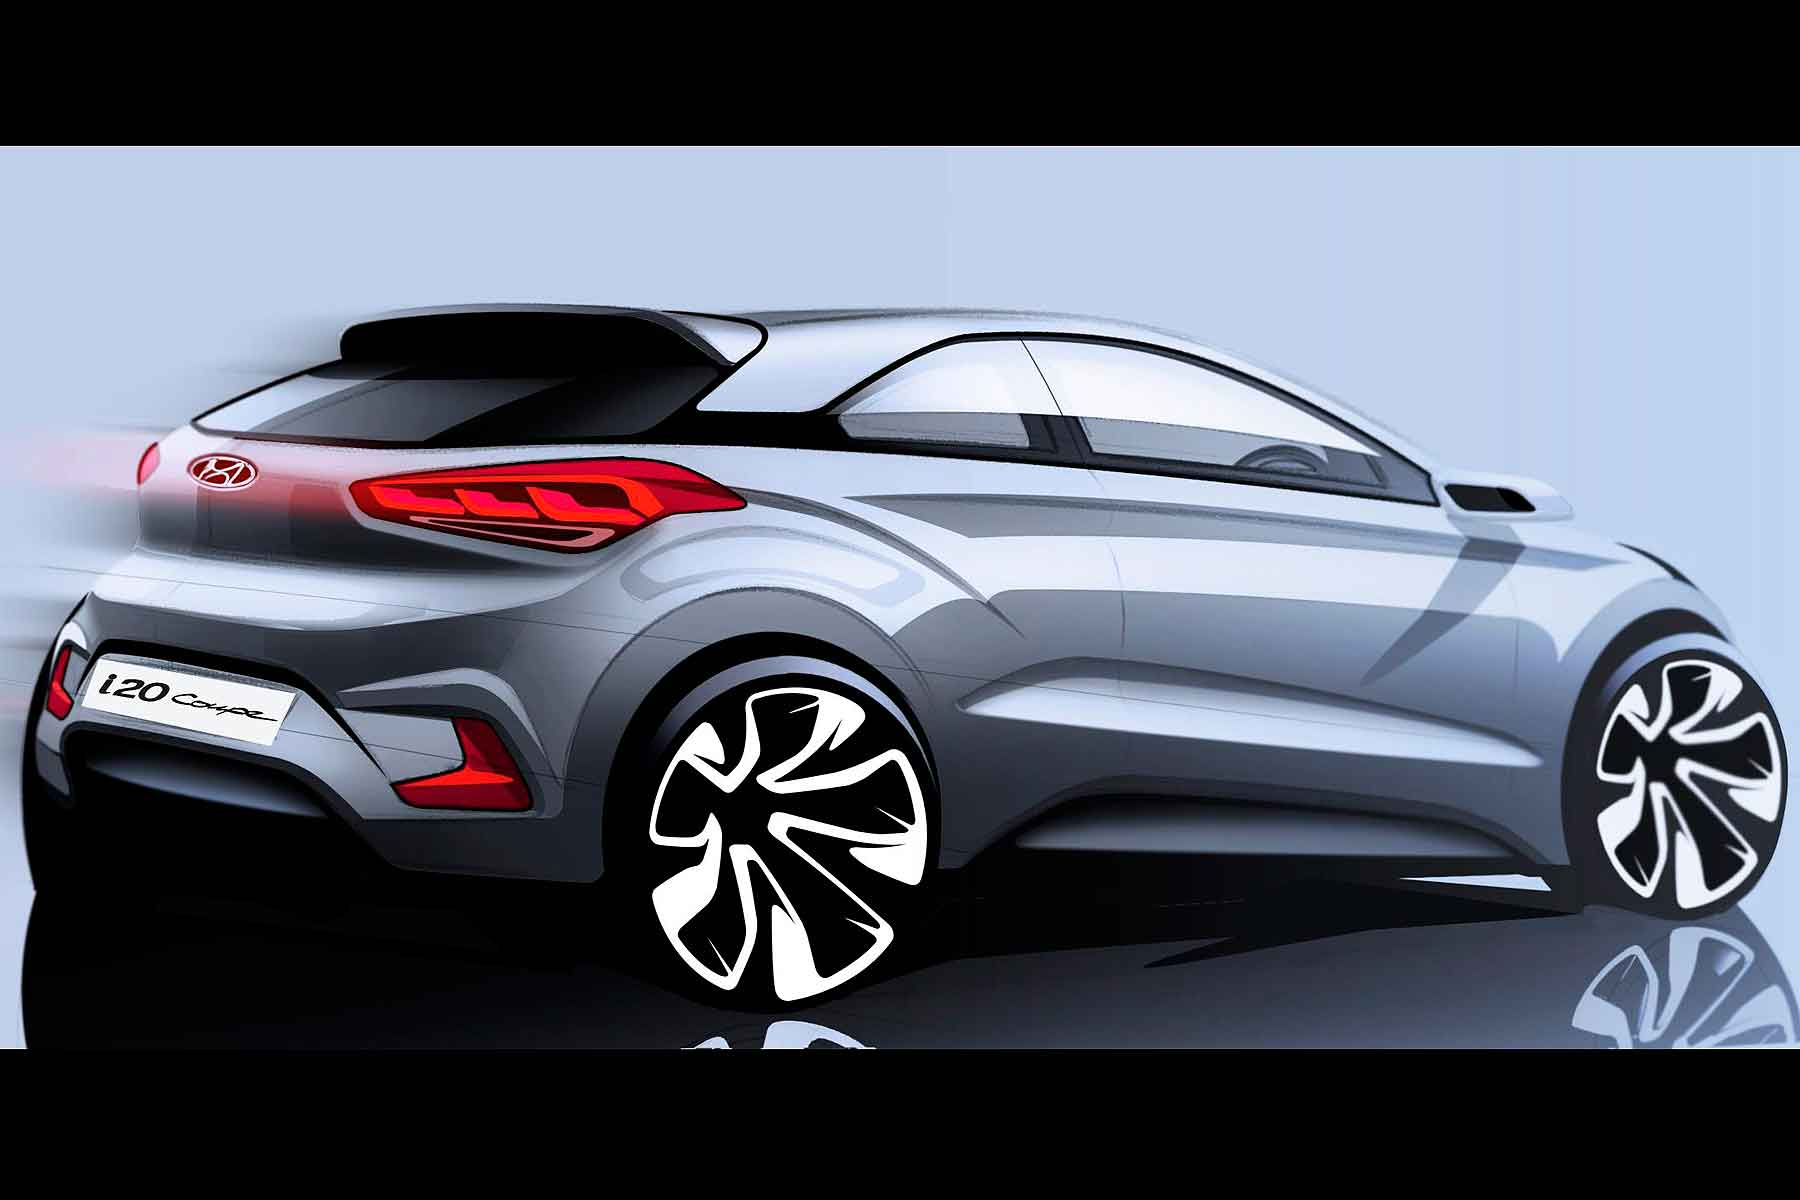 hyundai teases surprise new i20 coupe motoring research. Black Bedroom Furniture Sets. Home Design Ideas